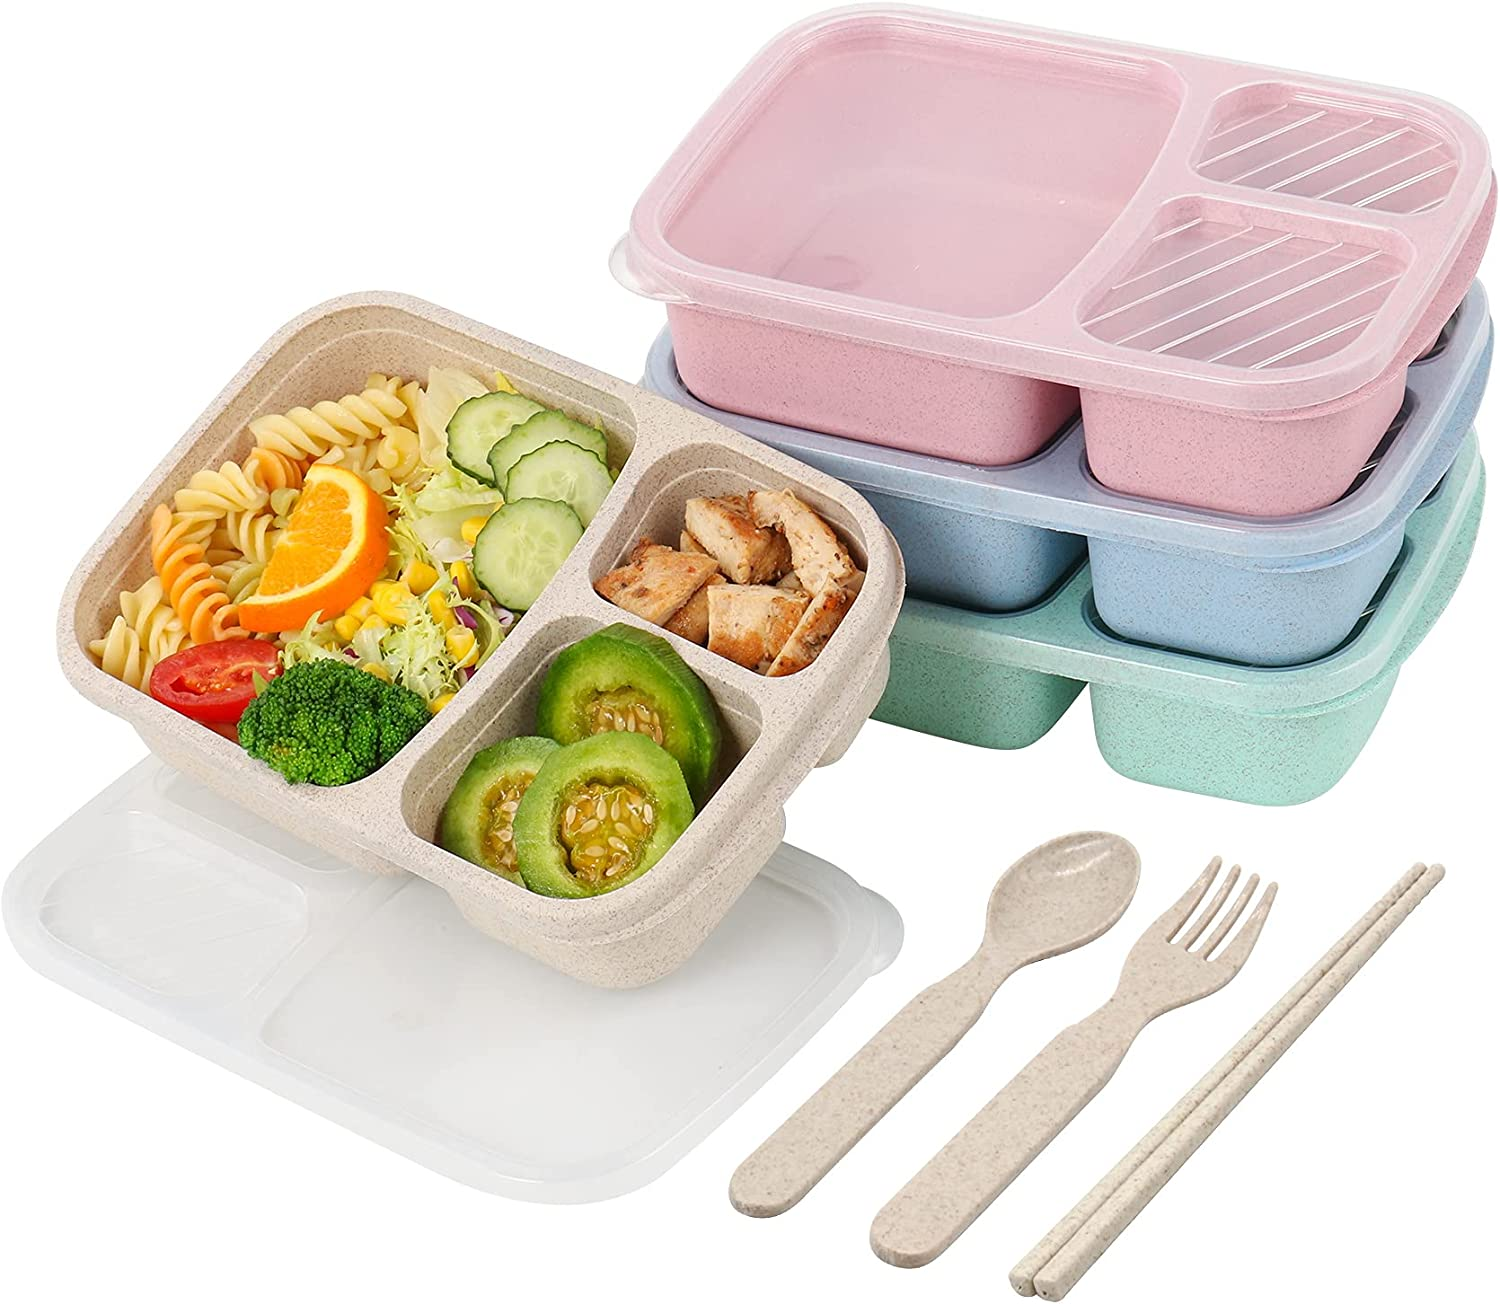 4 Pack Bento Lunch Box,3-Compartment Meal Prep Containers,Lunch Box for Kids,Durable BPA Free Plastic Reusable Food Storage Containers - Stackable, Suitable for Schools, Companies,Work and Travel